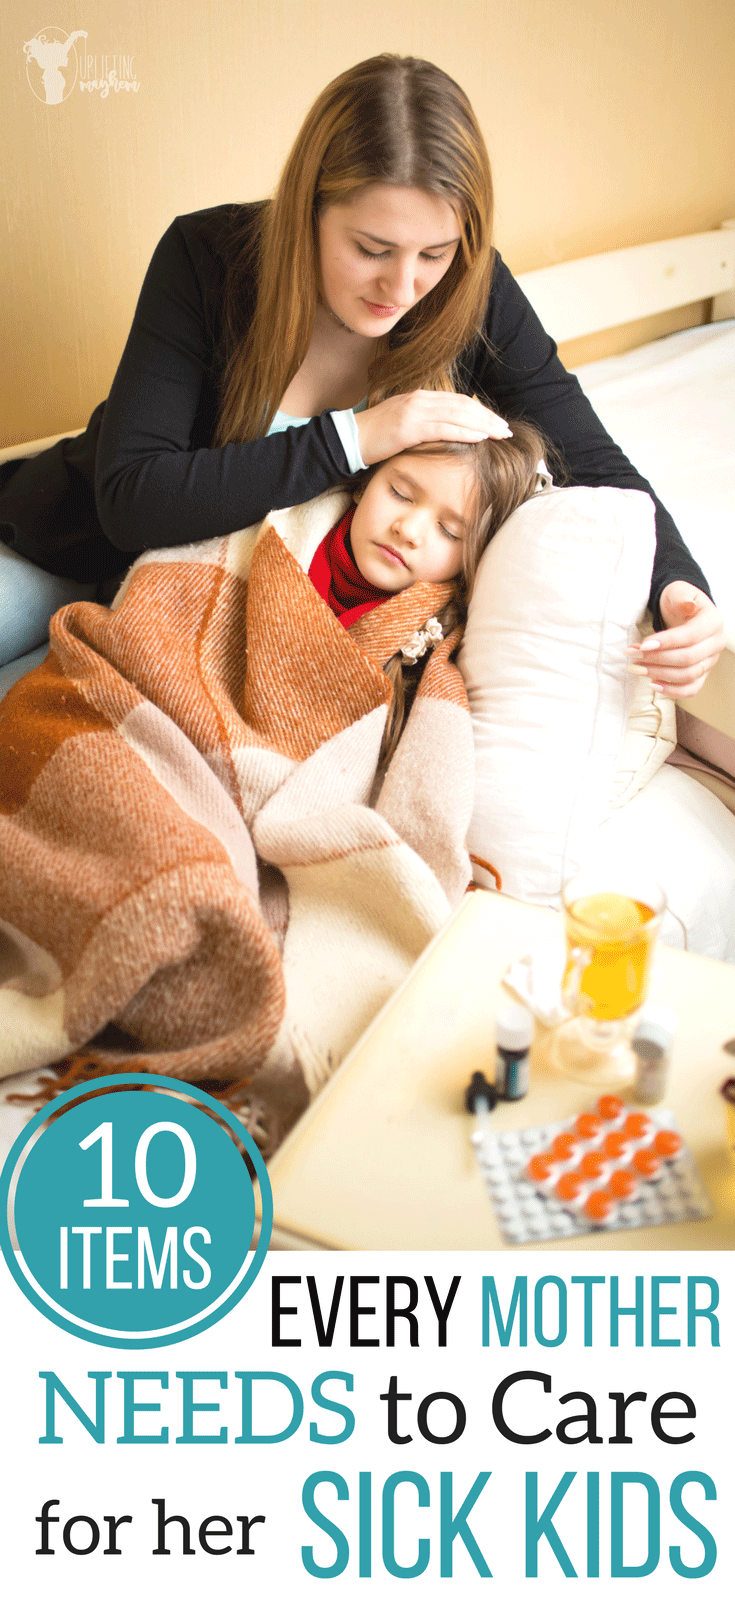 Are you prepared for flu season and all other sicknesses? Here are 10 items every mother needs to successfully care for her sick kids at home.